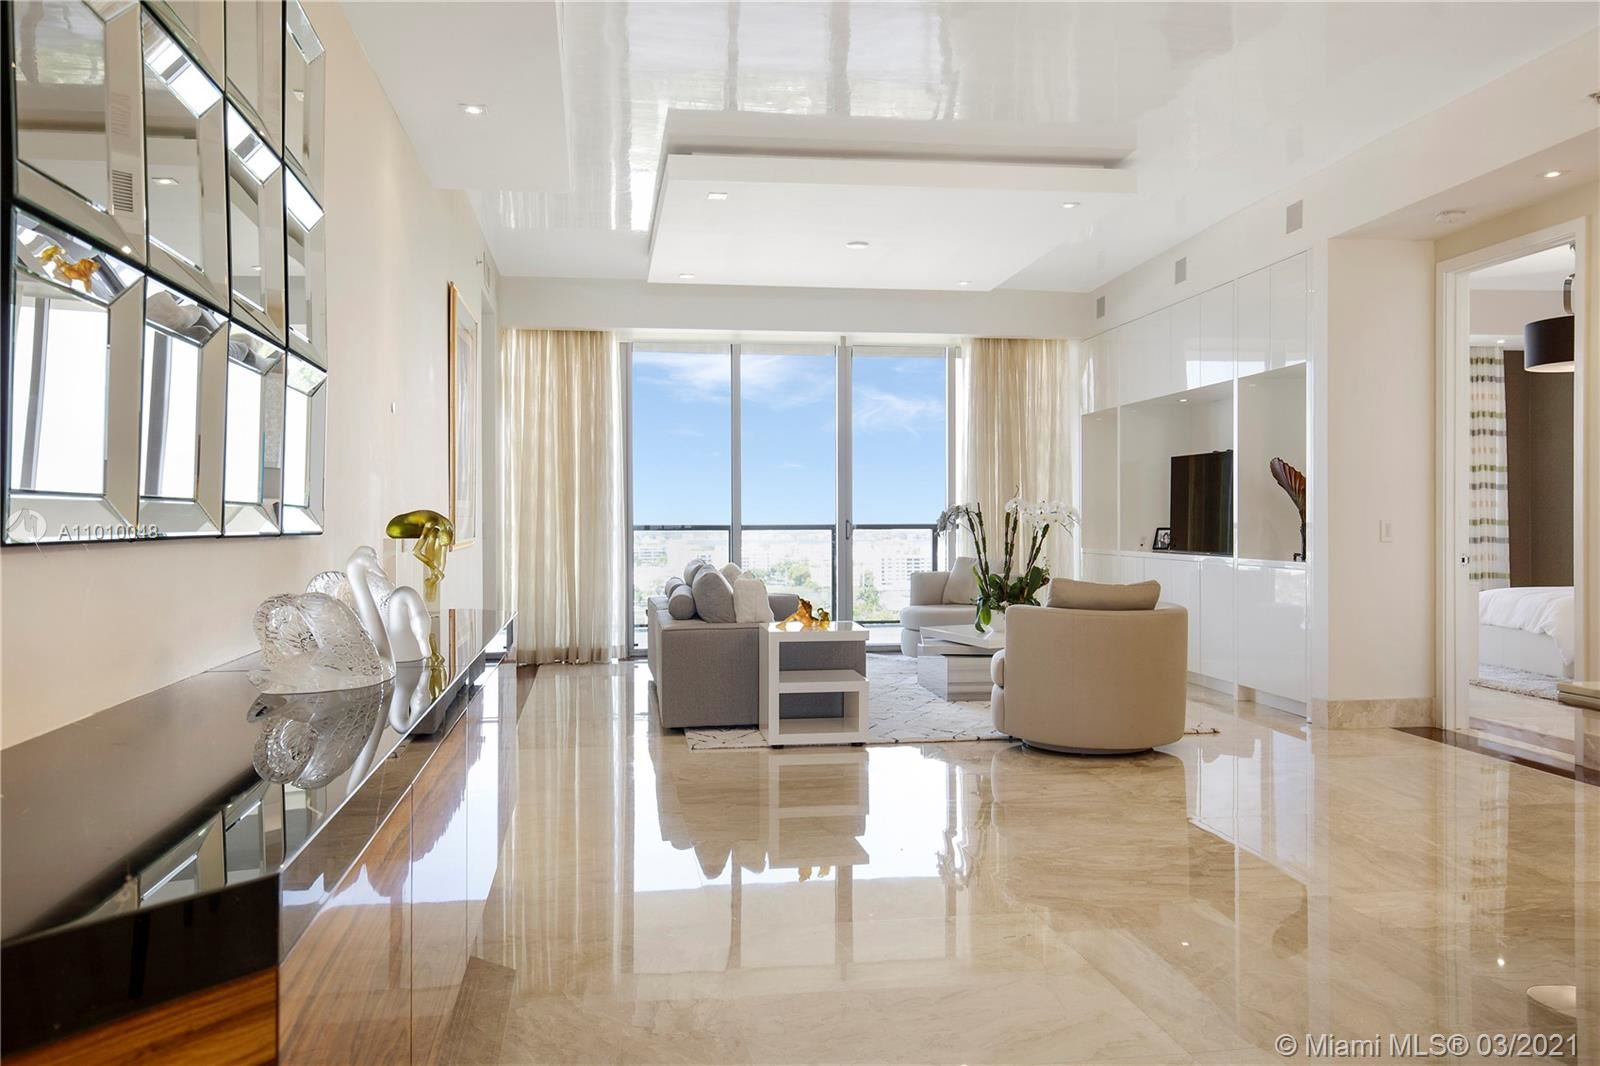 9705 Collins Ave #1403N, Bal Harbour, FL 33154 - #: A11010048